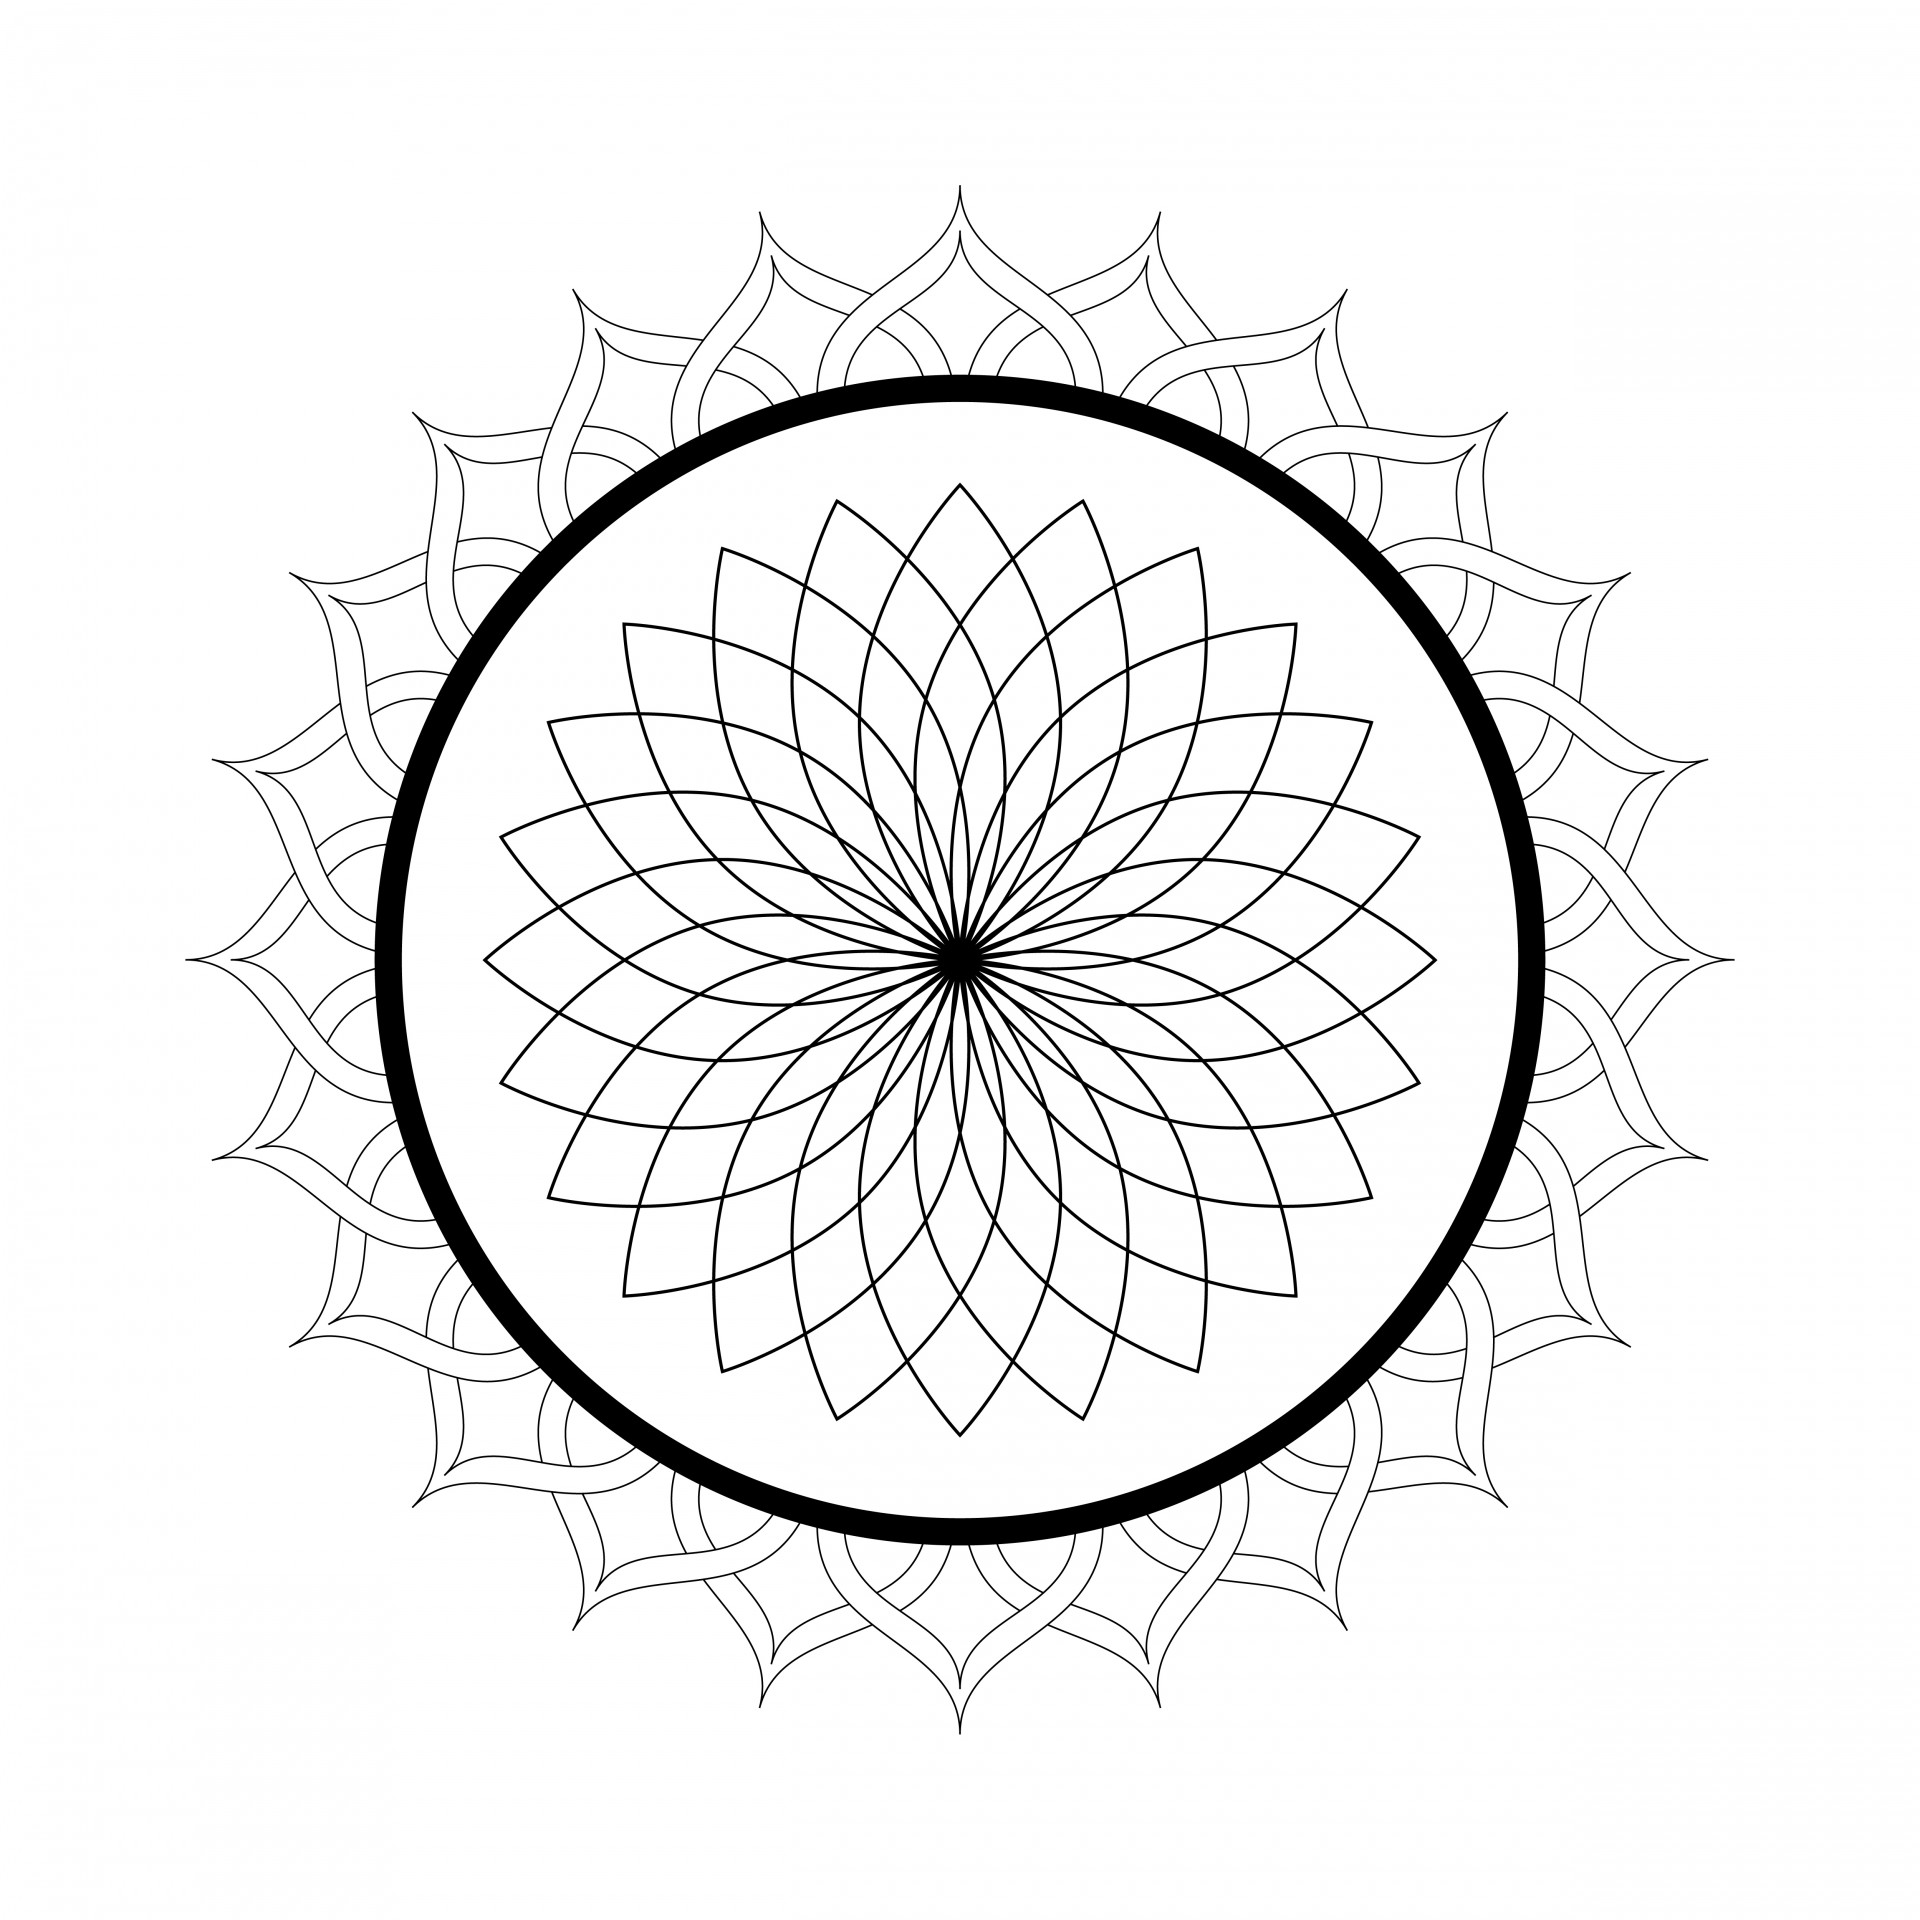 mandala coloring pages free printable adults download the full size mandala on the right to print and mandala adults free coloring pages printable